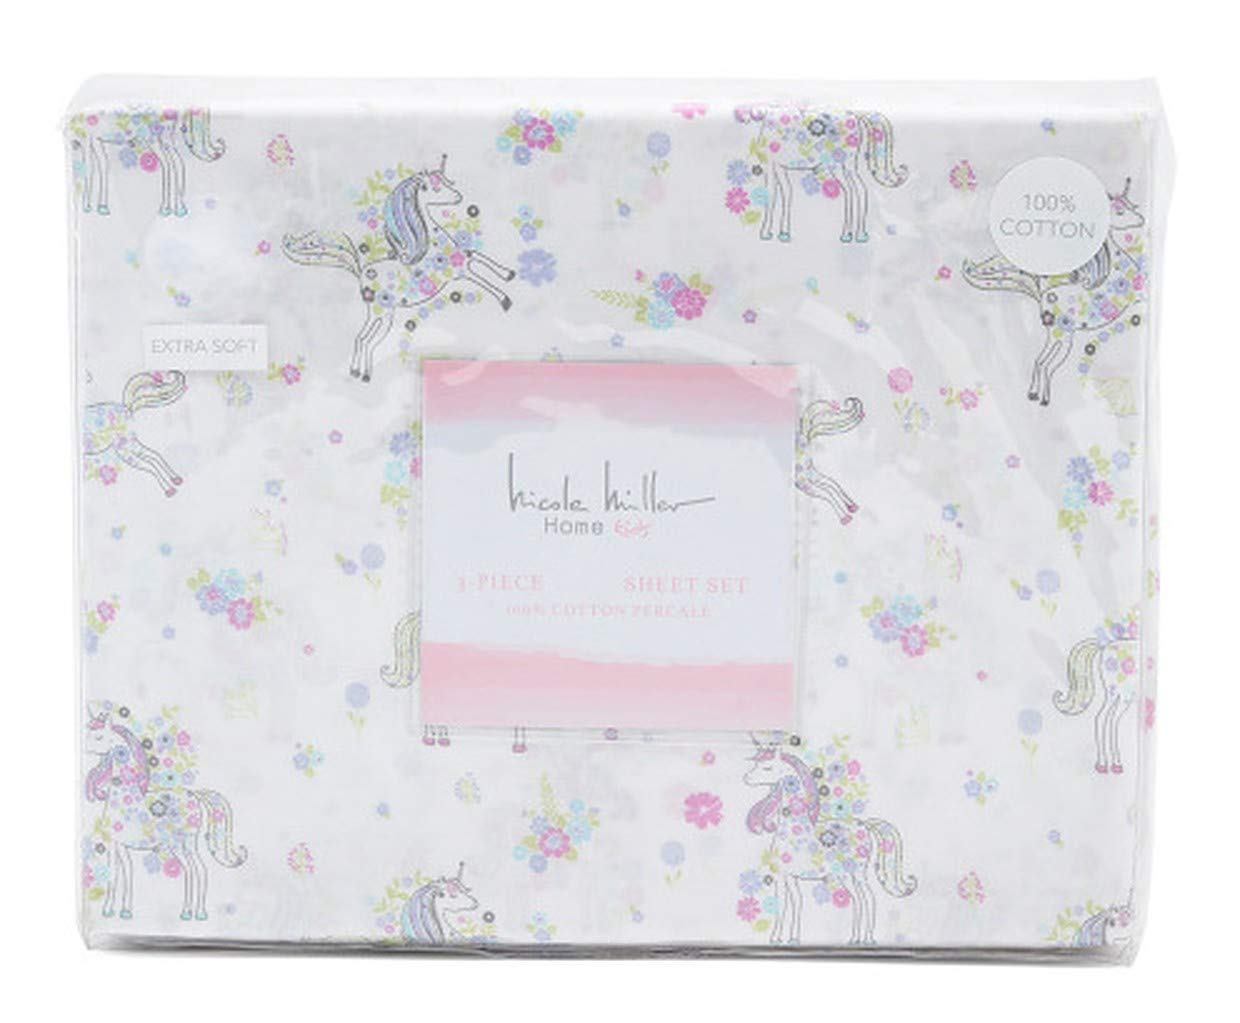 Nicole Miller Kids Unicorn Bloom Sheet Set for Girls in Pink Green Lilac Floral (Twin)